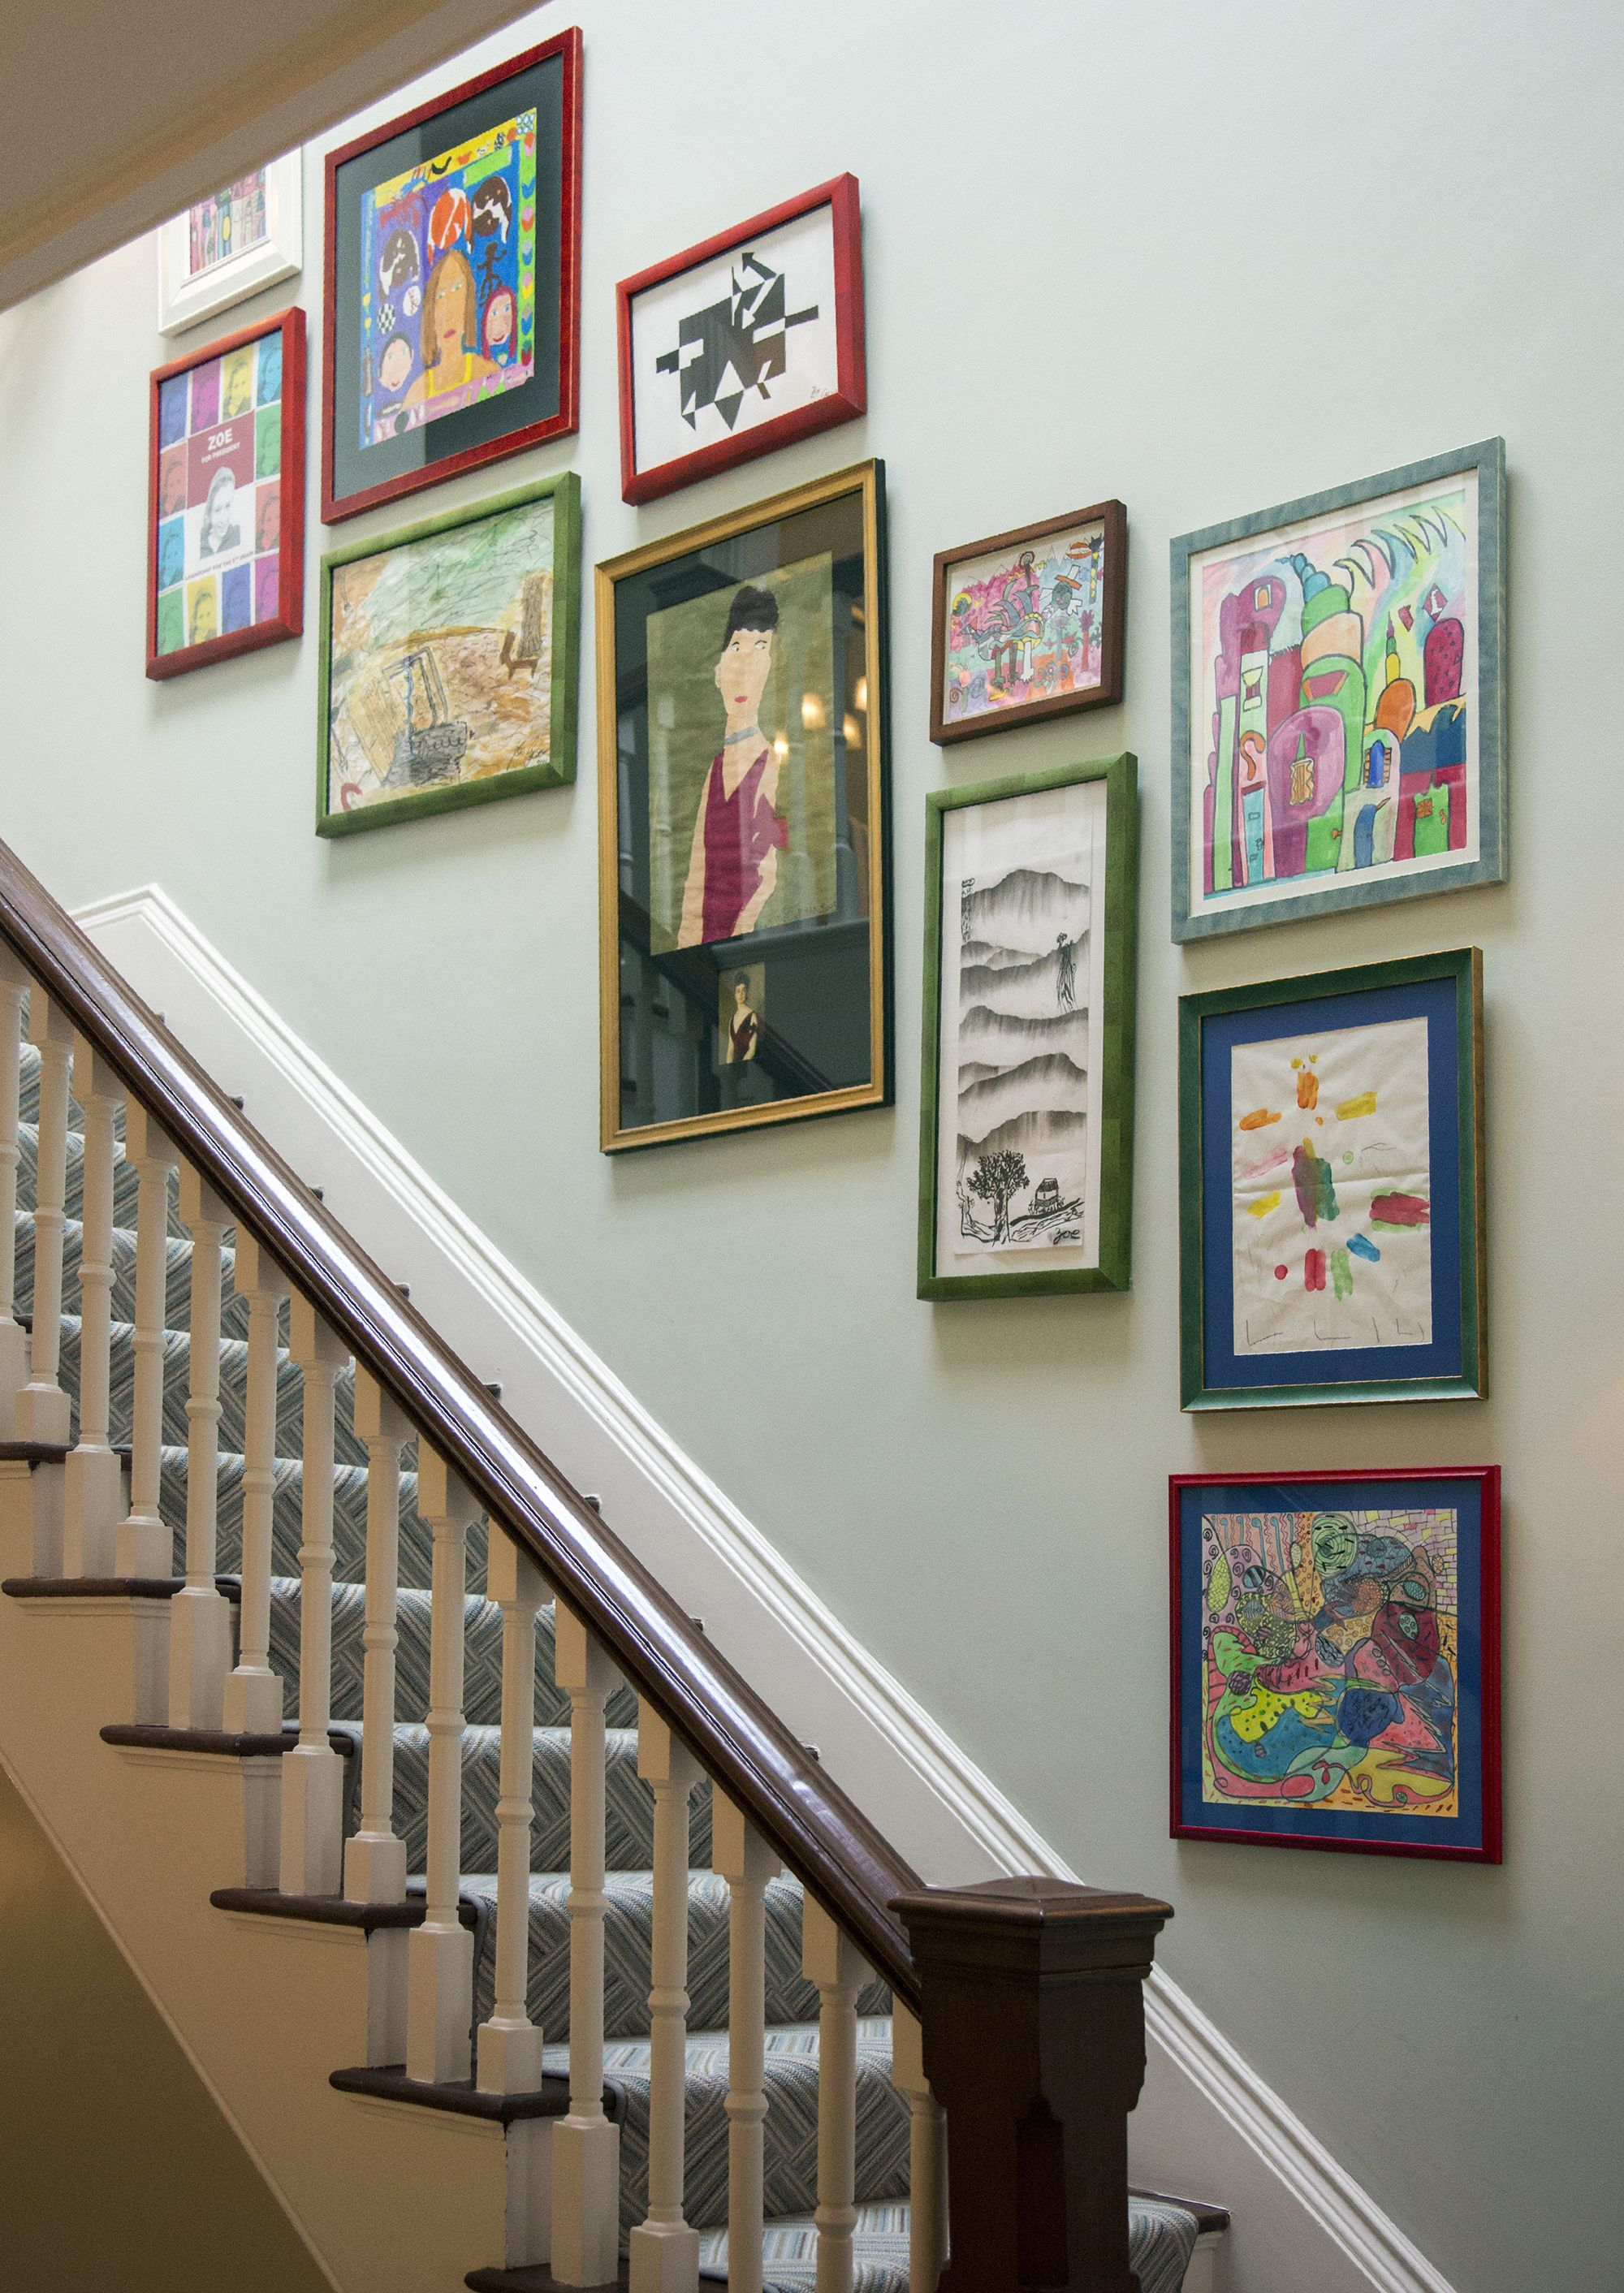 27 Stylish Staircase Decorating Ideas - How To Decorate in Landing Art Wall Decor (Image 2 of 30)